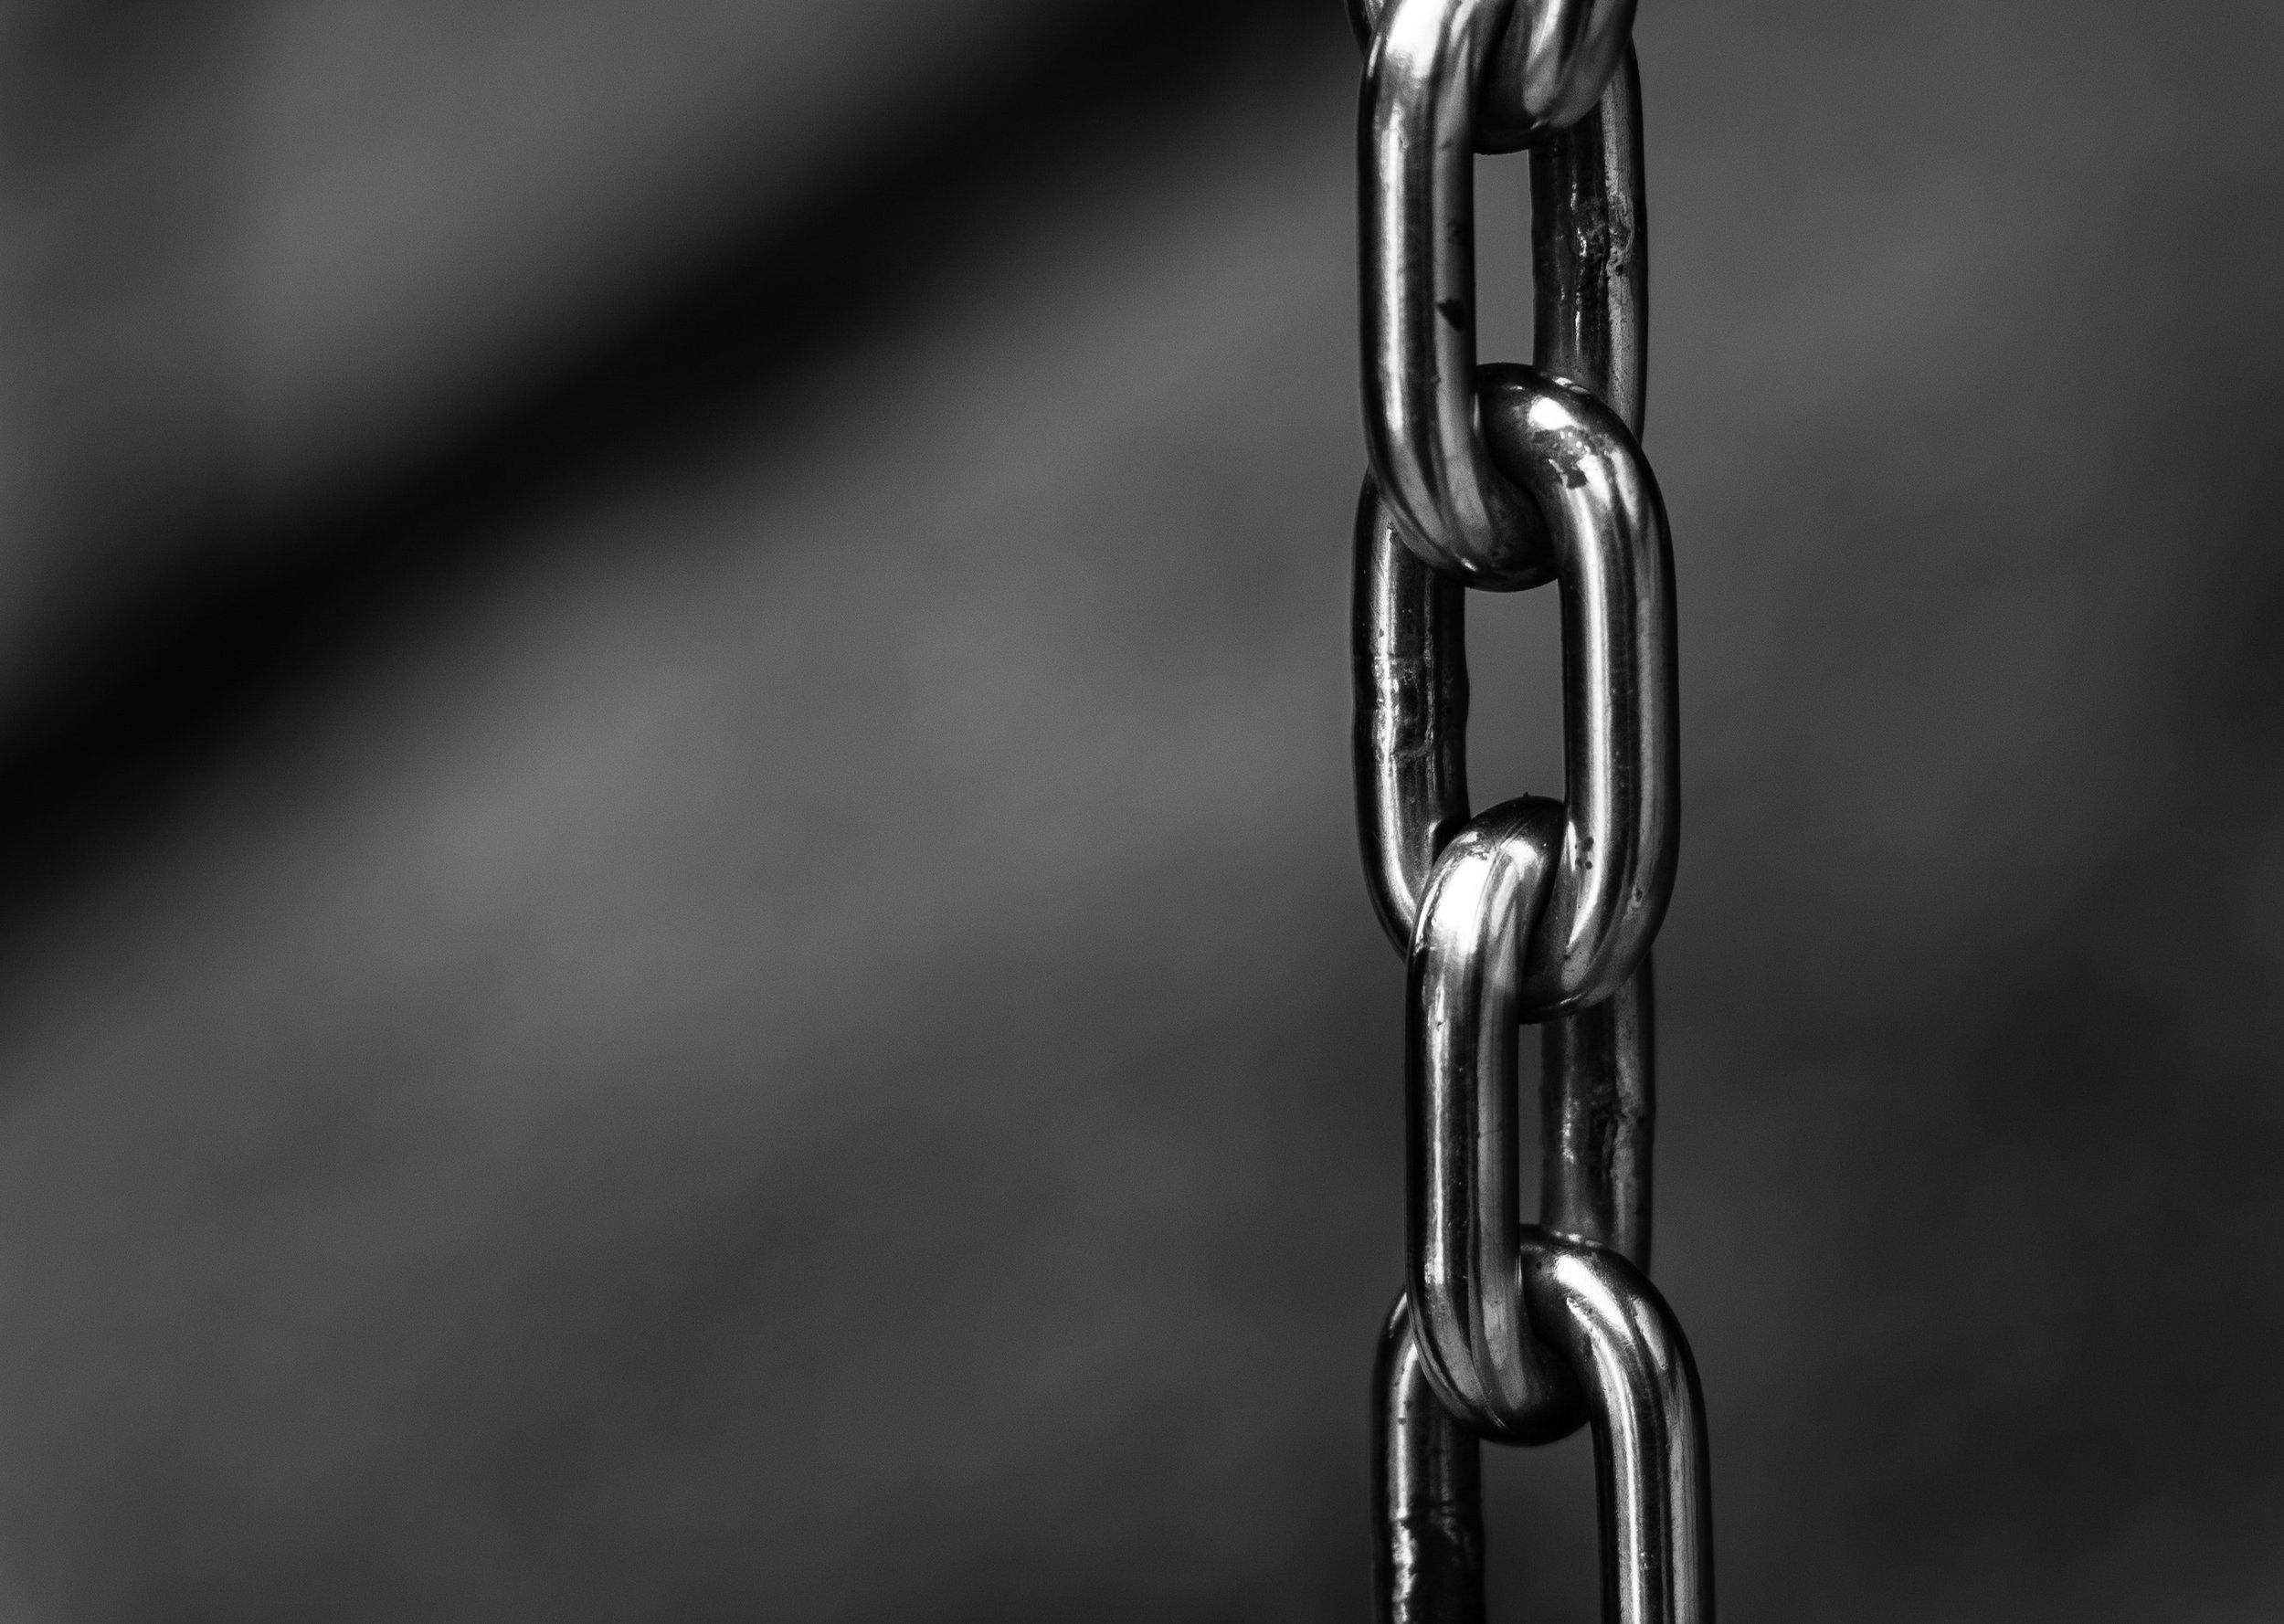 blur-chains-chrome-220237.jpg